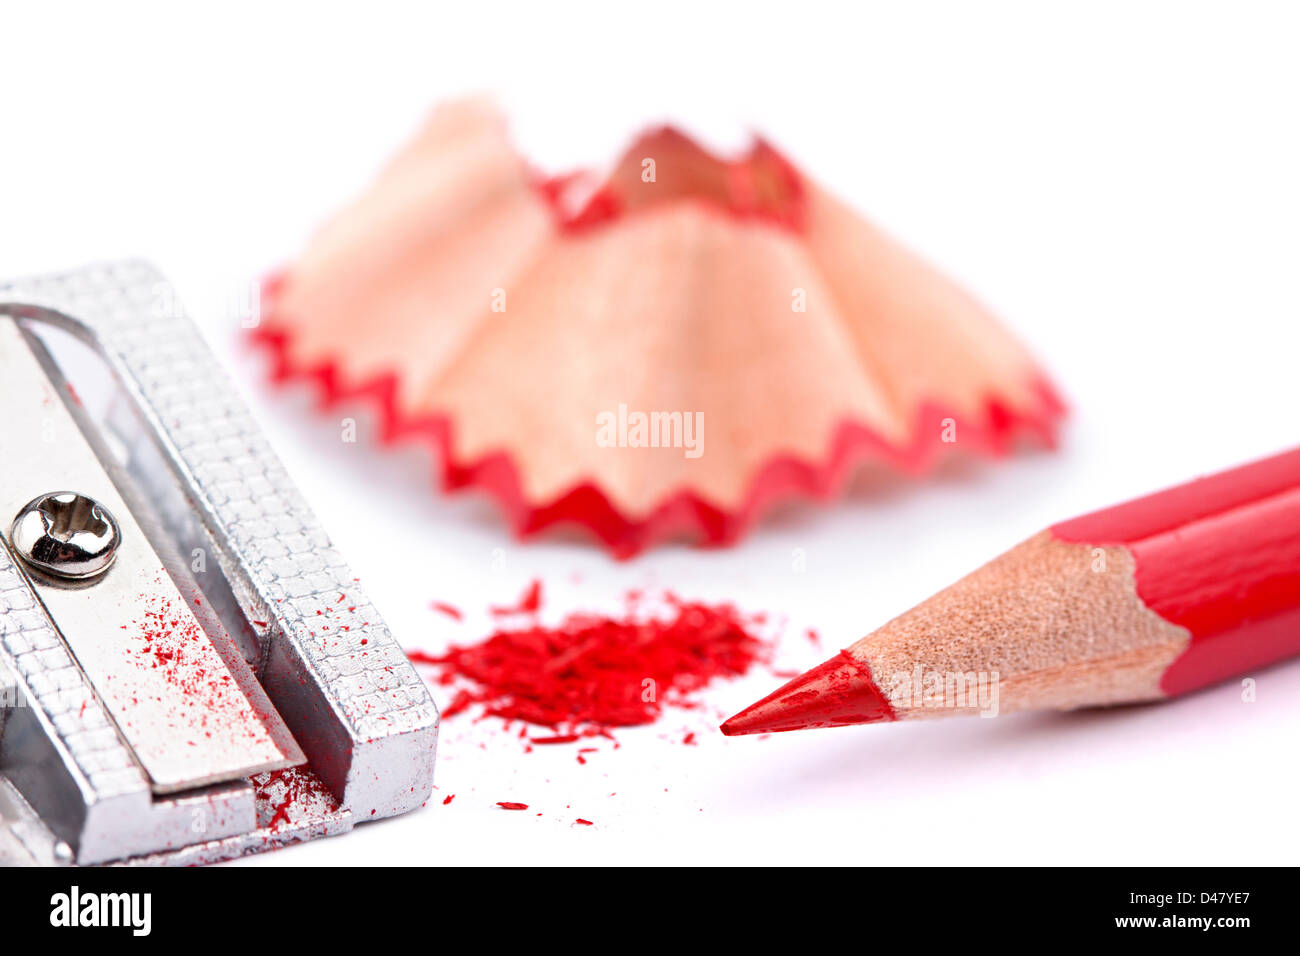 red pencil and sharpener on white background - Stock Image